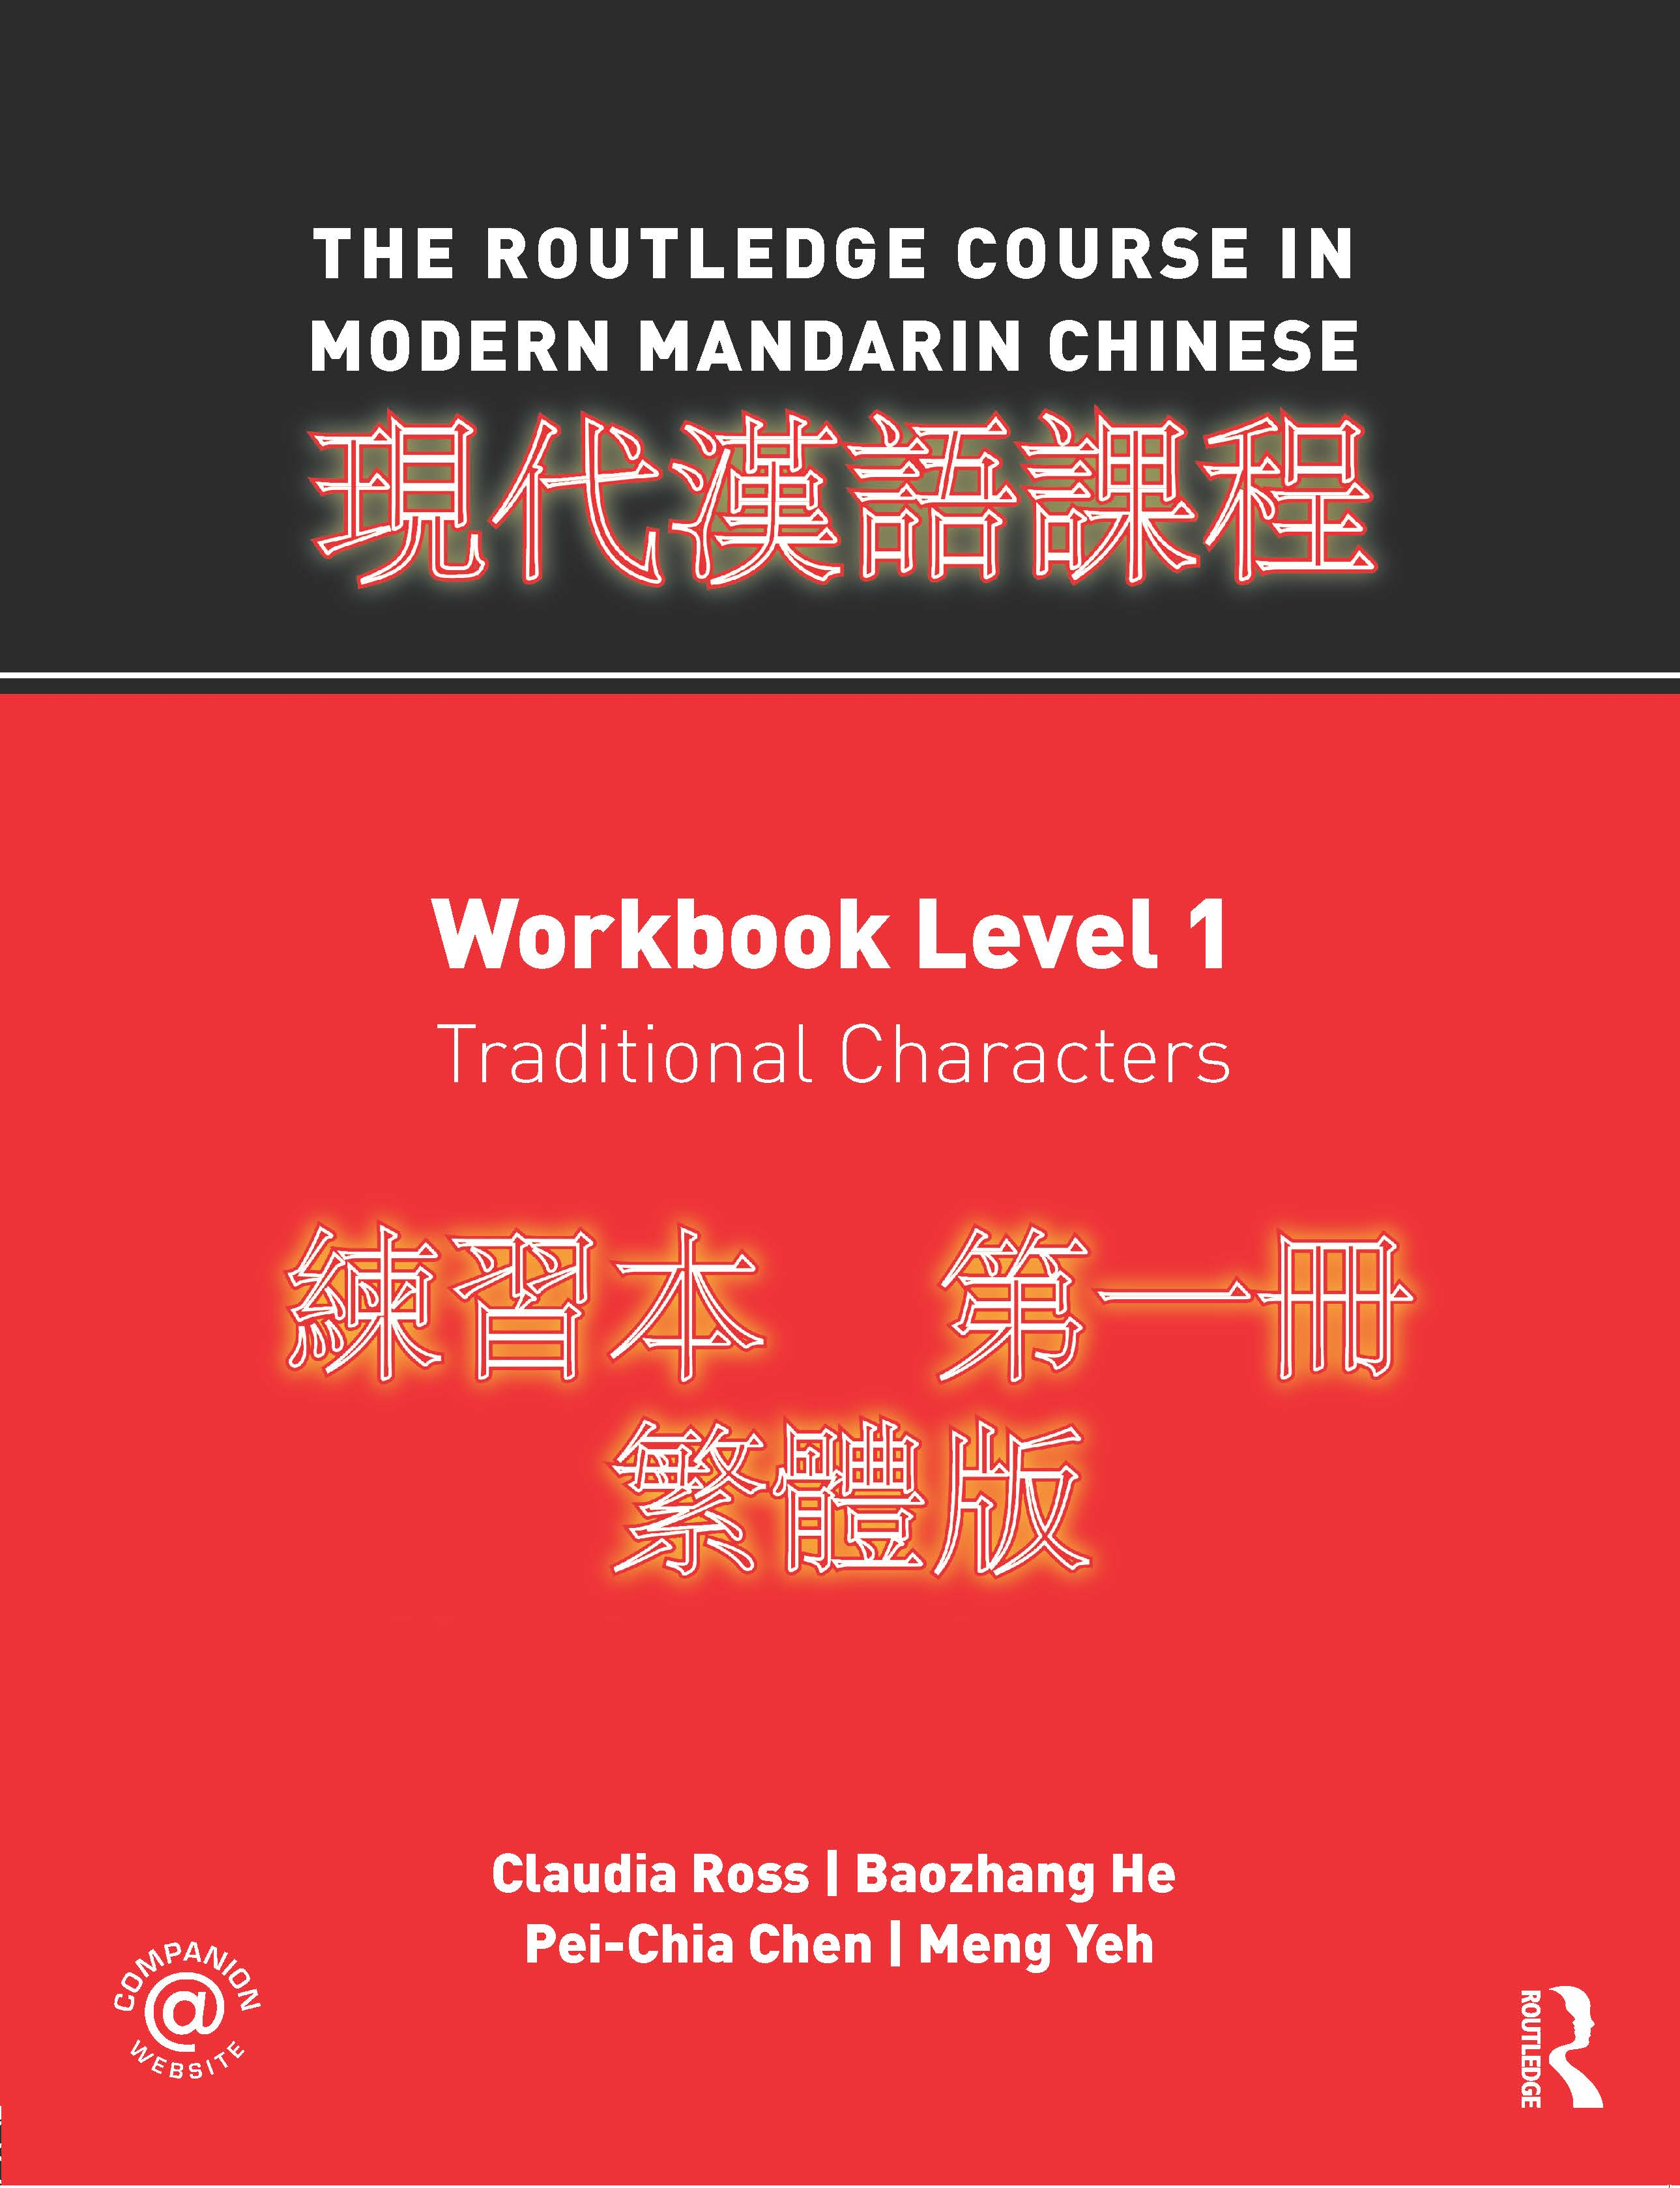 The Routledge Course in Modern Mandarin Chinese: Workbook Level 1, Traditional Characters (Paperback) book cover